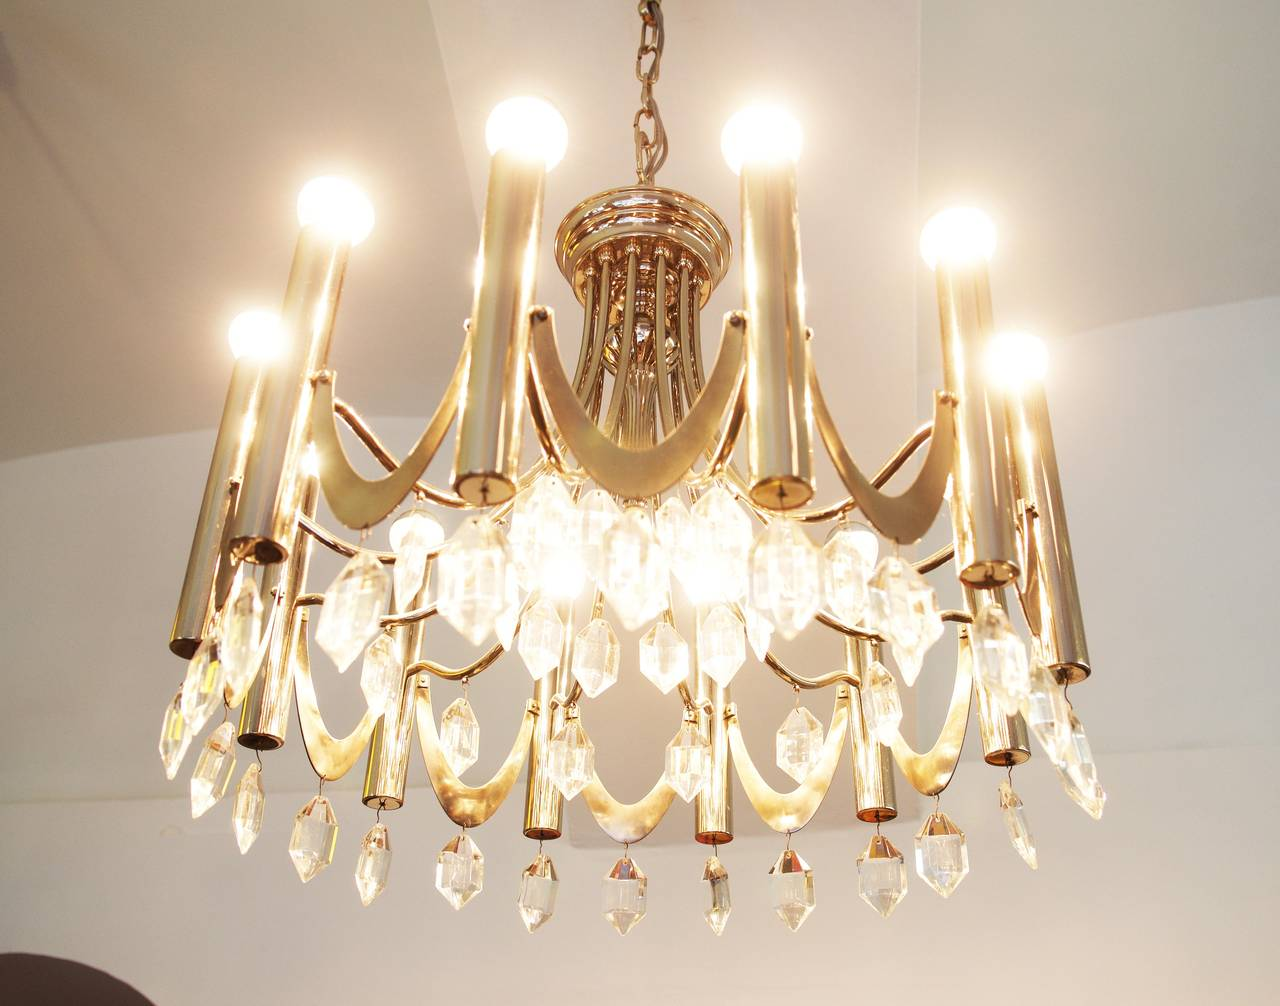 Large Chandelier Attributed to Gaetano Sciolari from 1960s For Sale 1